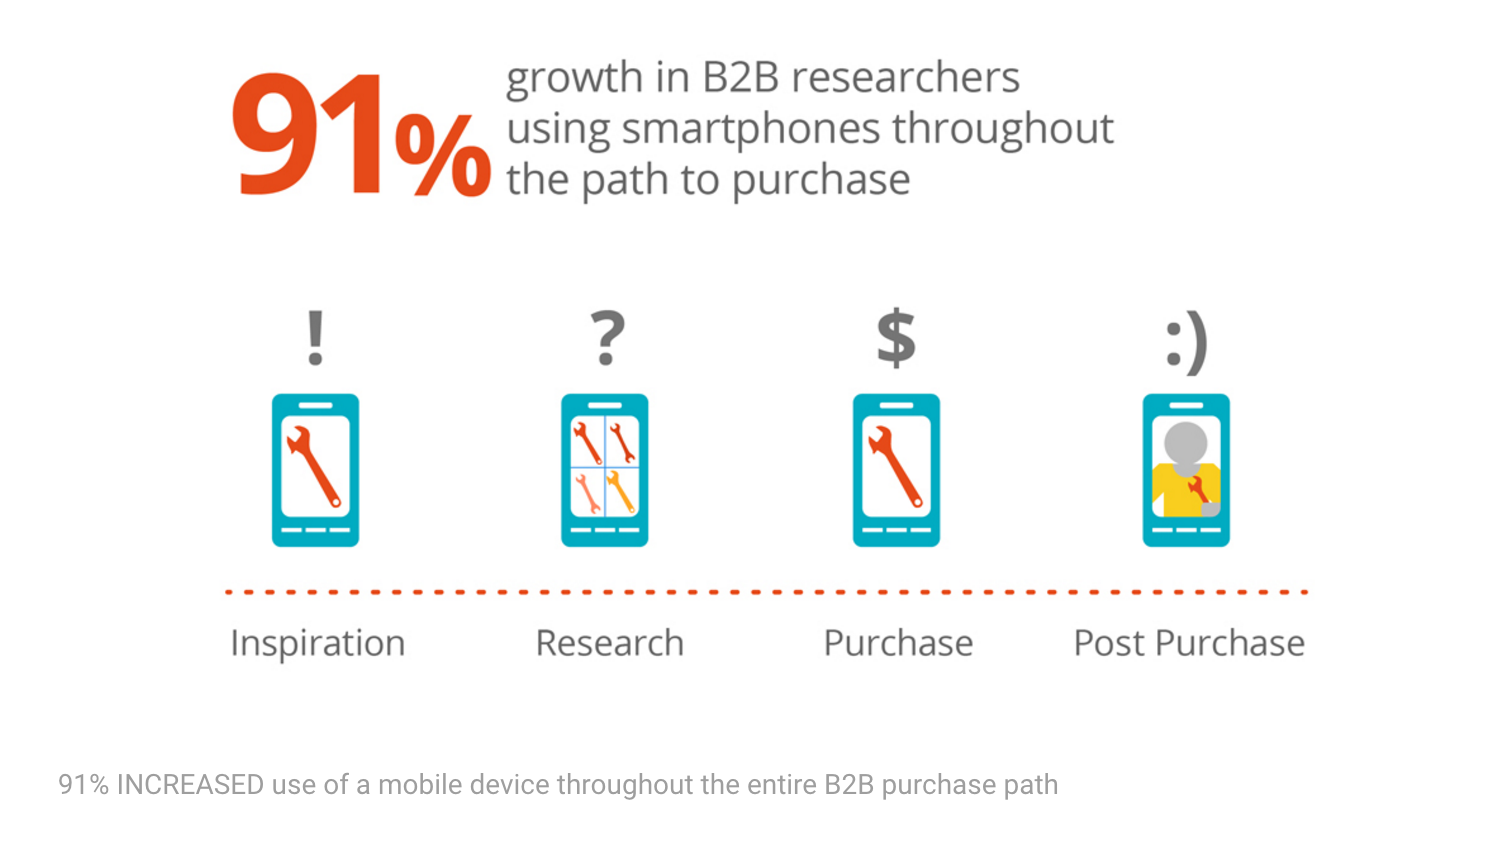 Courtesy: Think with Google - The Changing Face of B2B Marketing